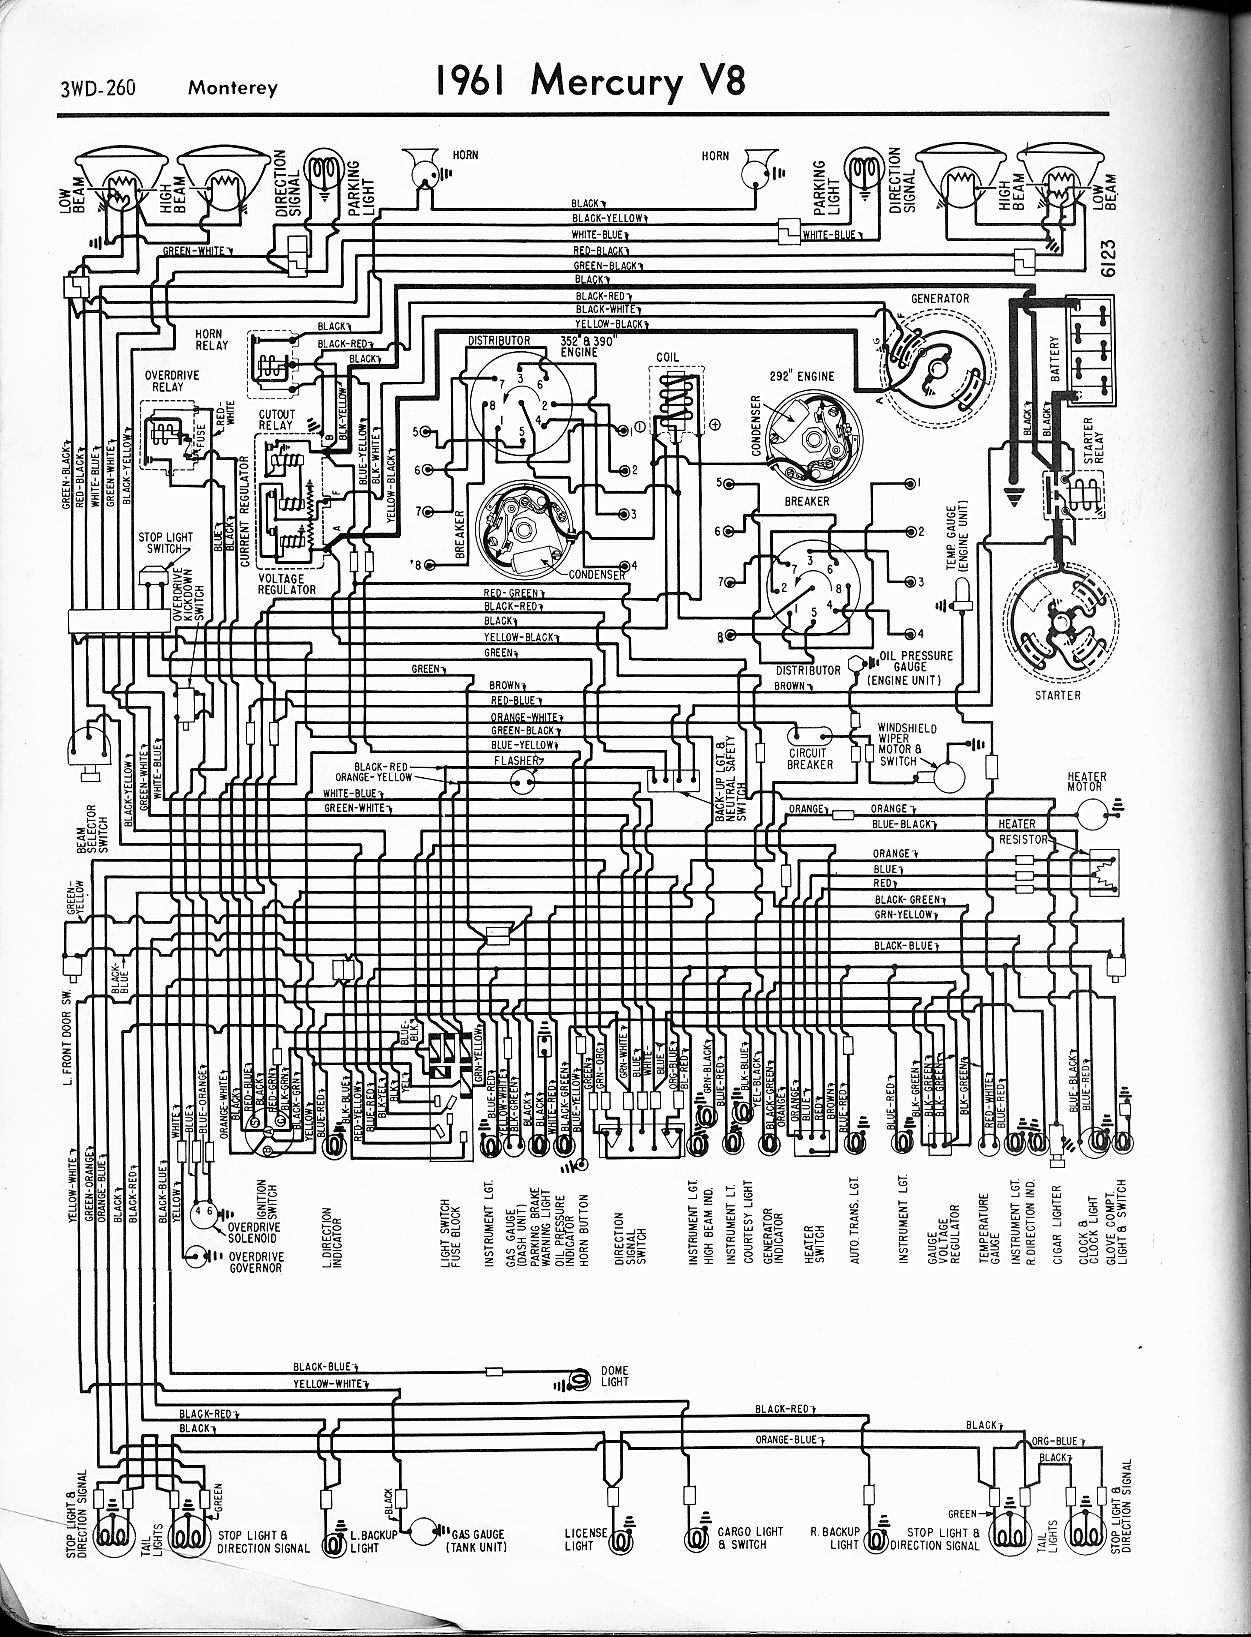 MWire5765 260 mercury wiring diagrams the old car manual project manual motor starter wiring diagram at virtualis.co